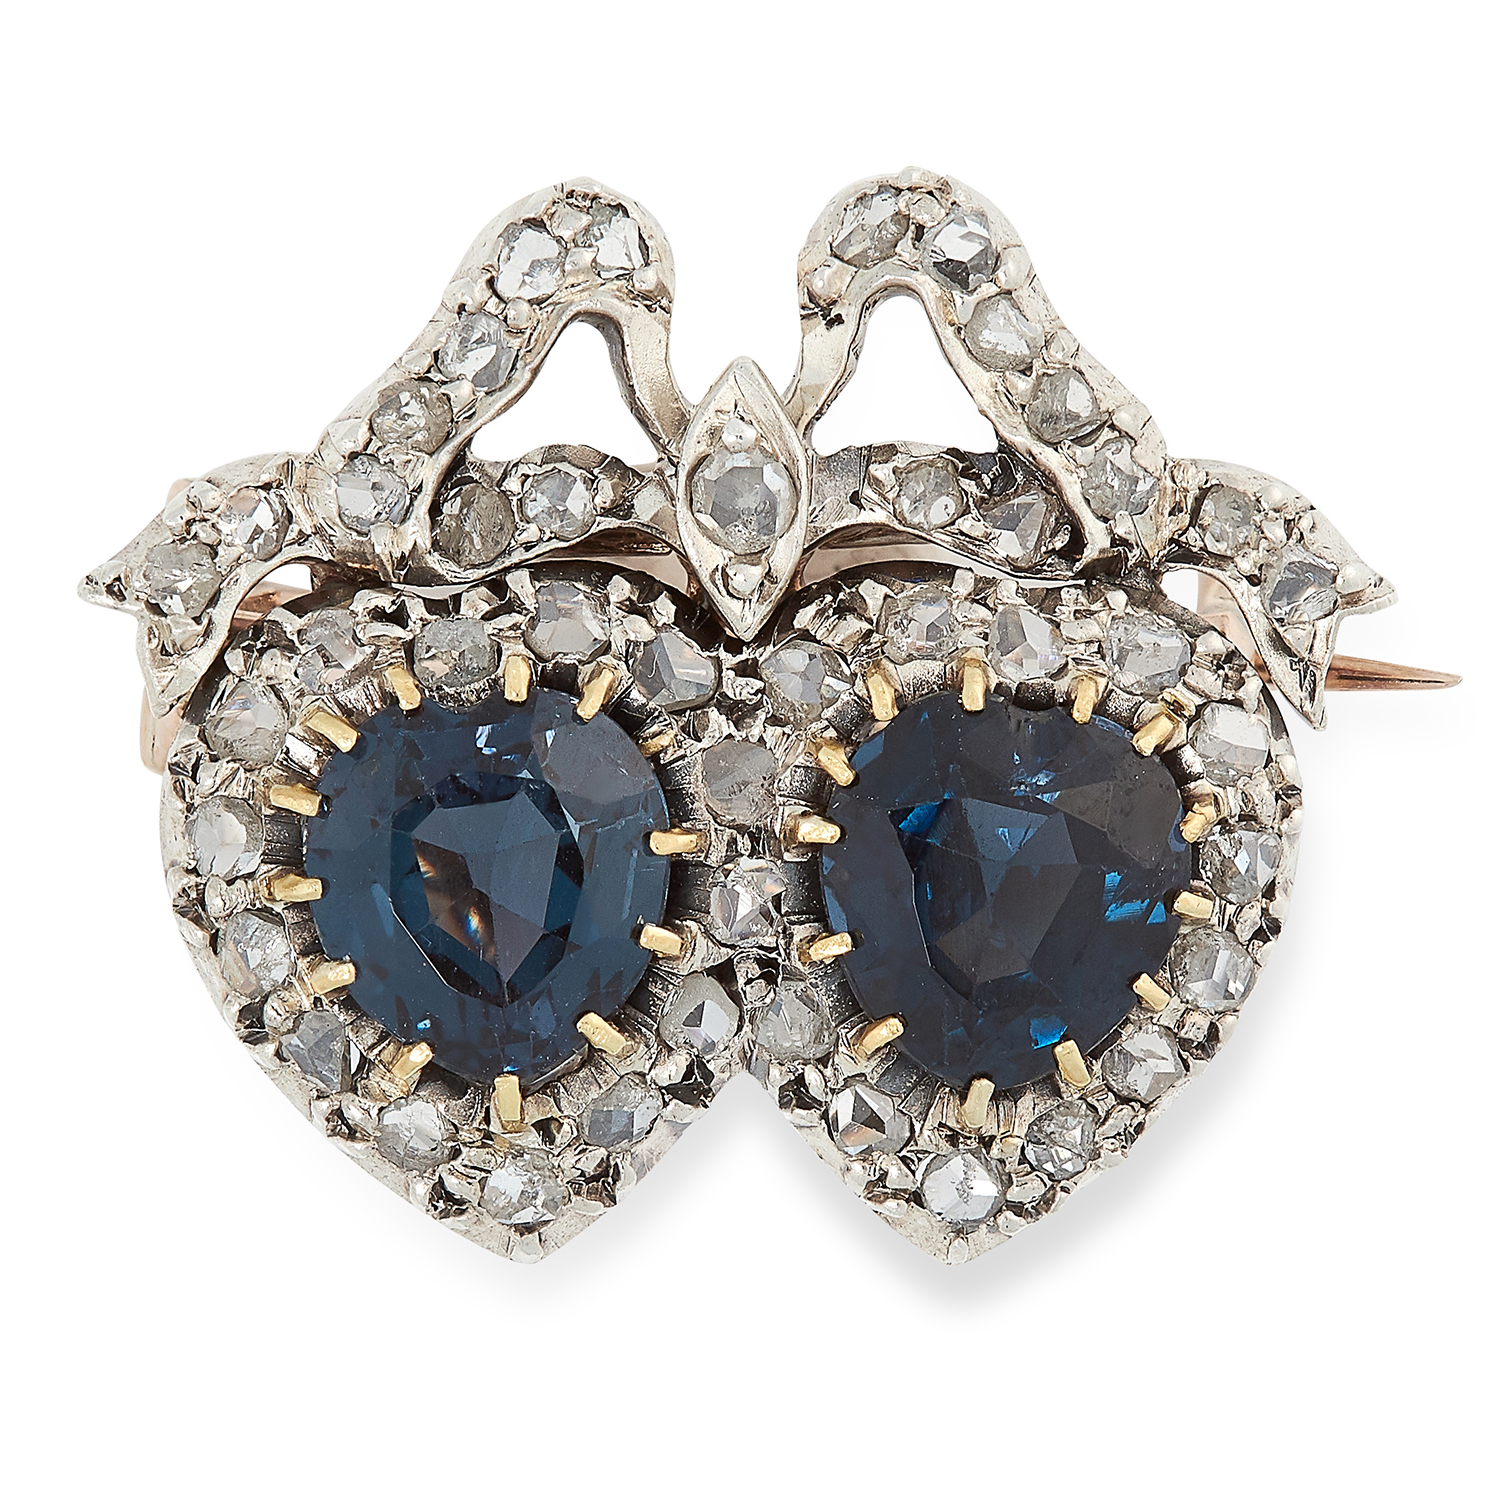 Los 3 - AN ANTIQUE VICTORIAN SAPPHIRE AND DIAMOND SWEETHEART BROOCH set with heart cut sapphires and rose